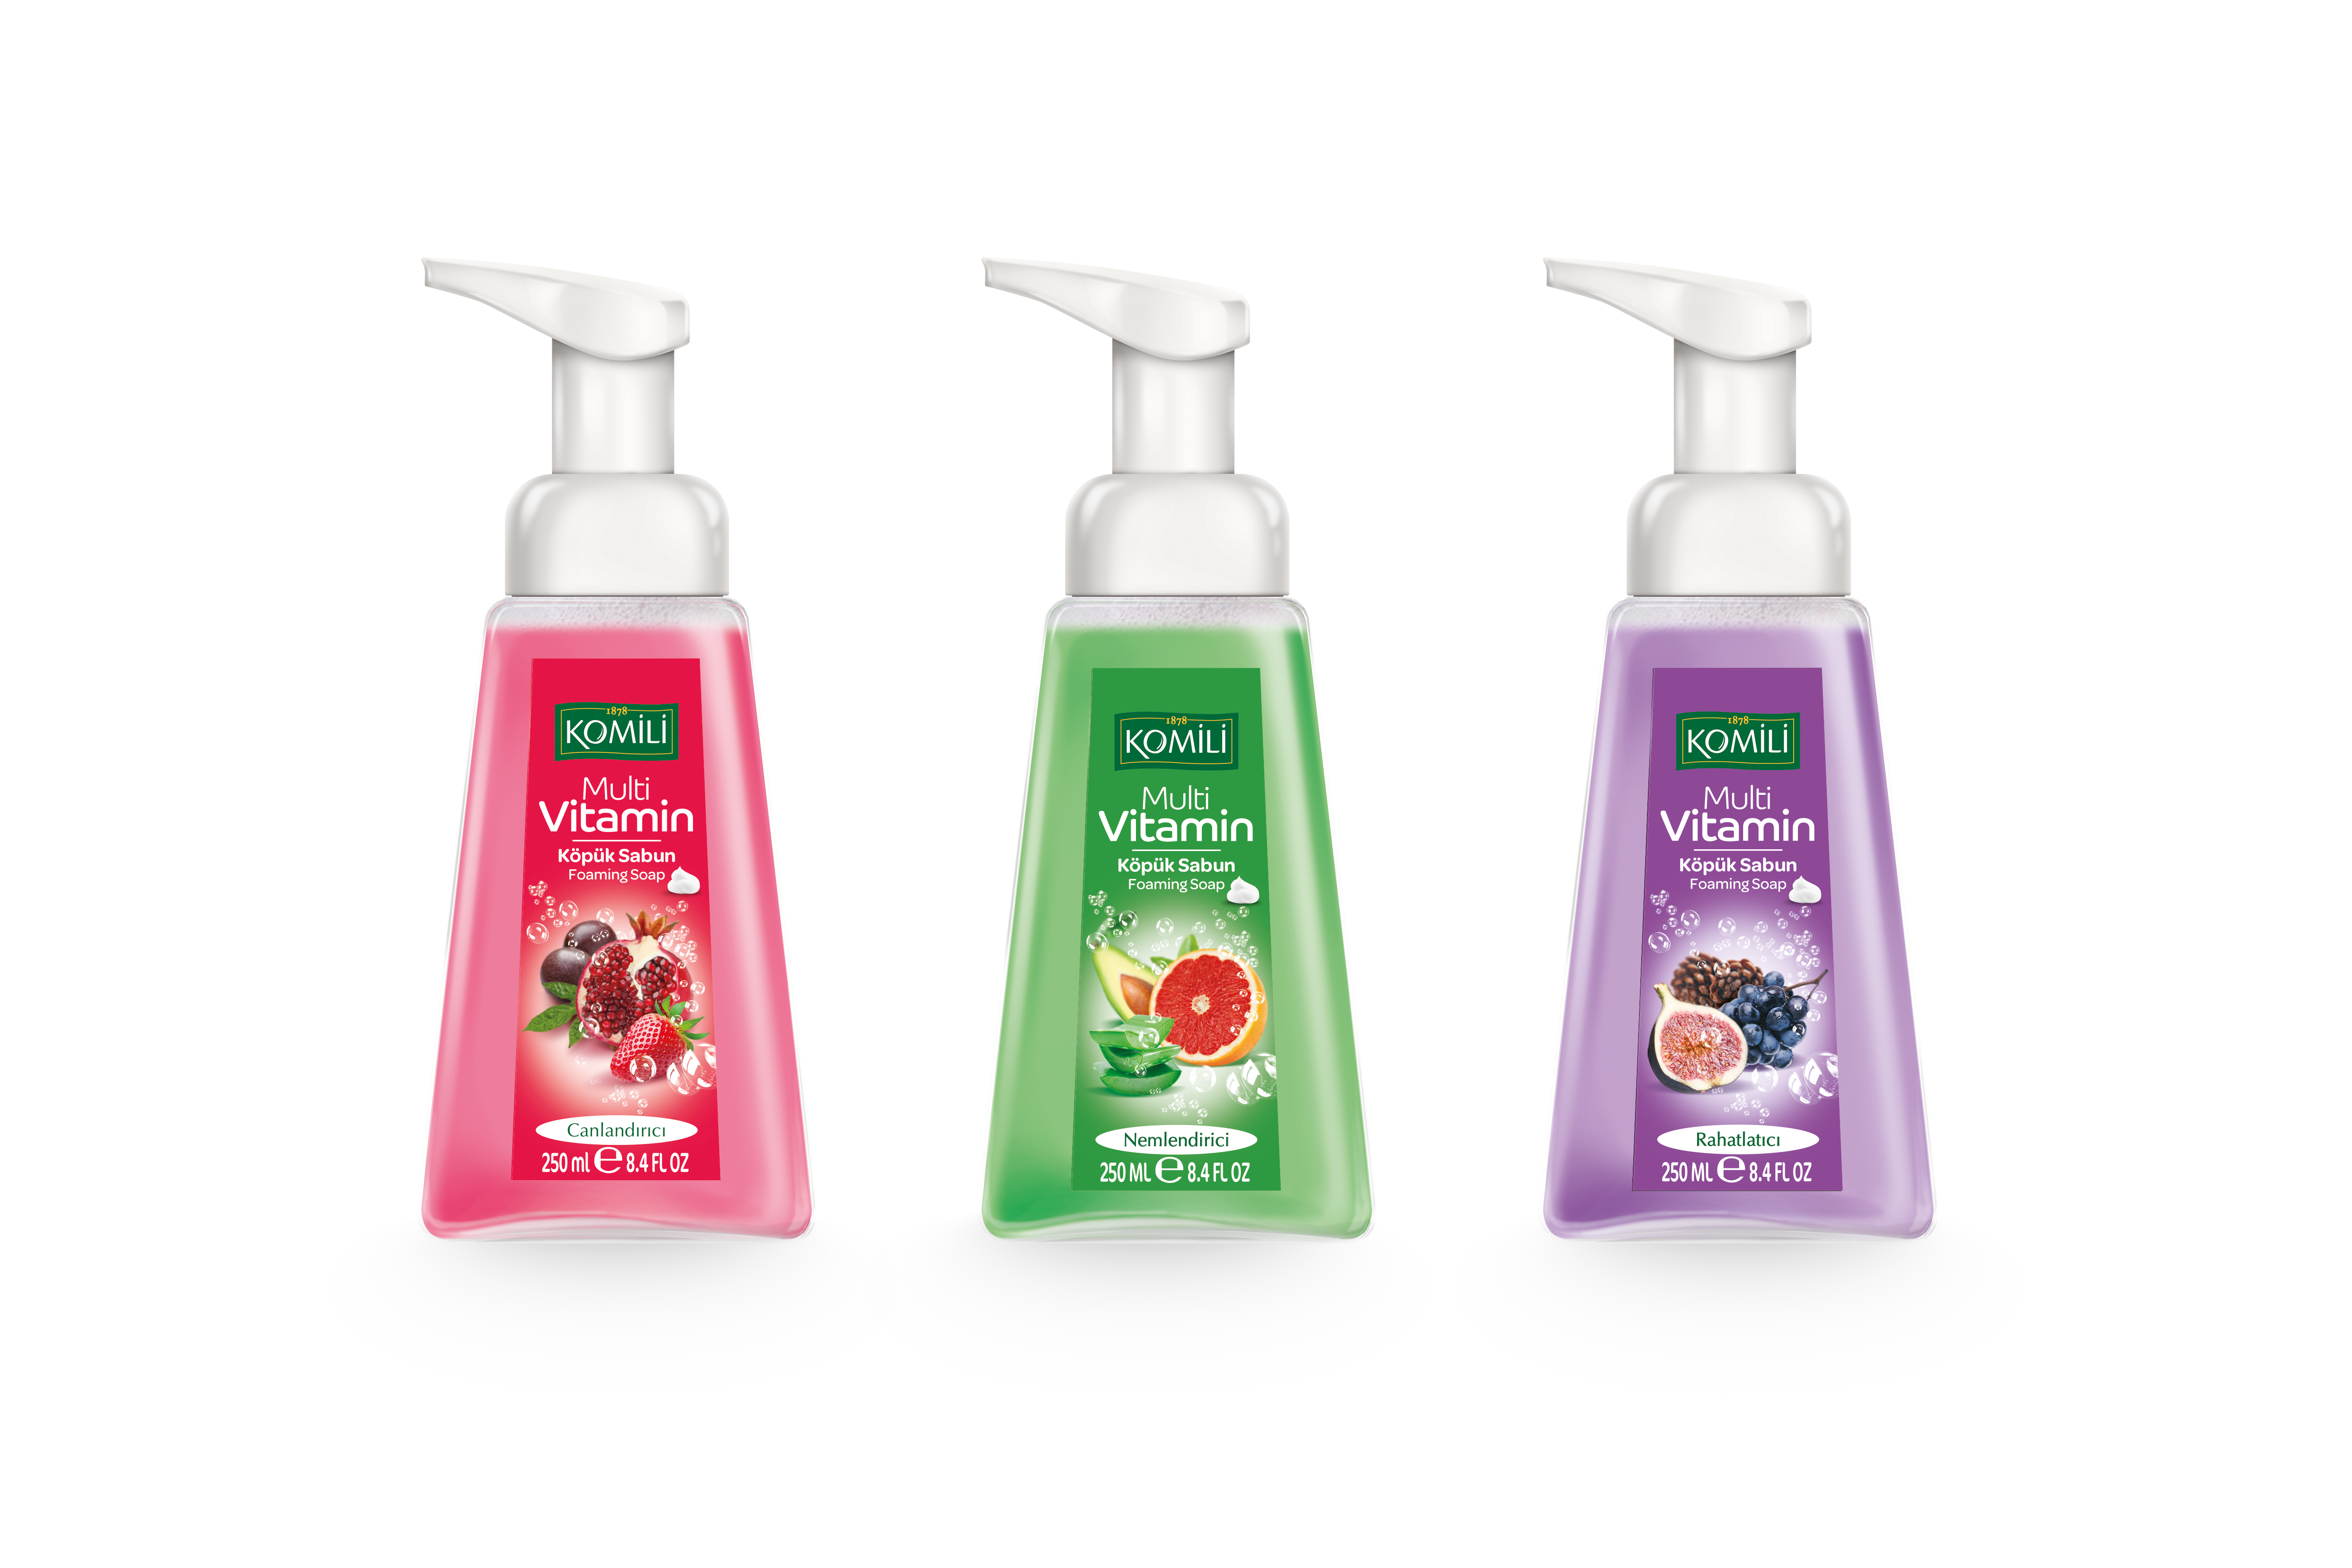 Komili Multi Vitamin Foam Soap